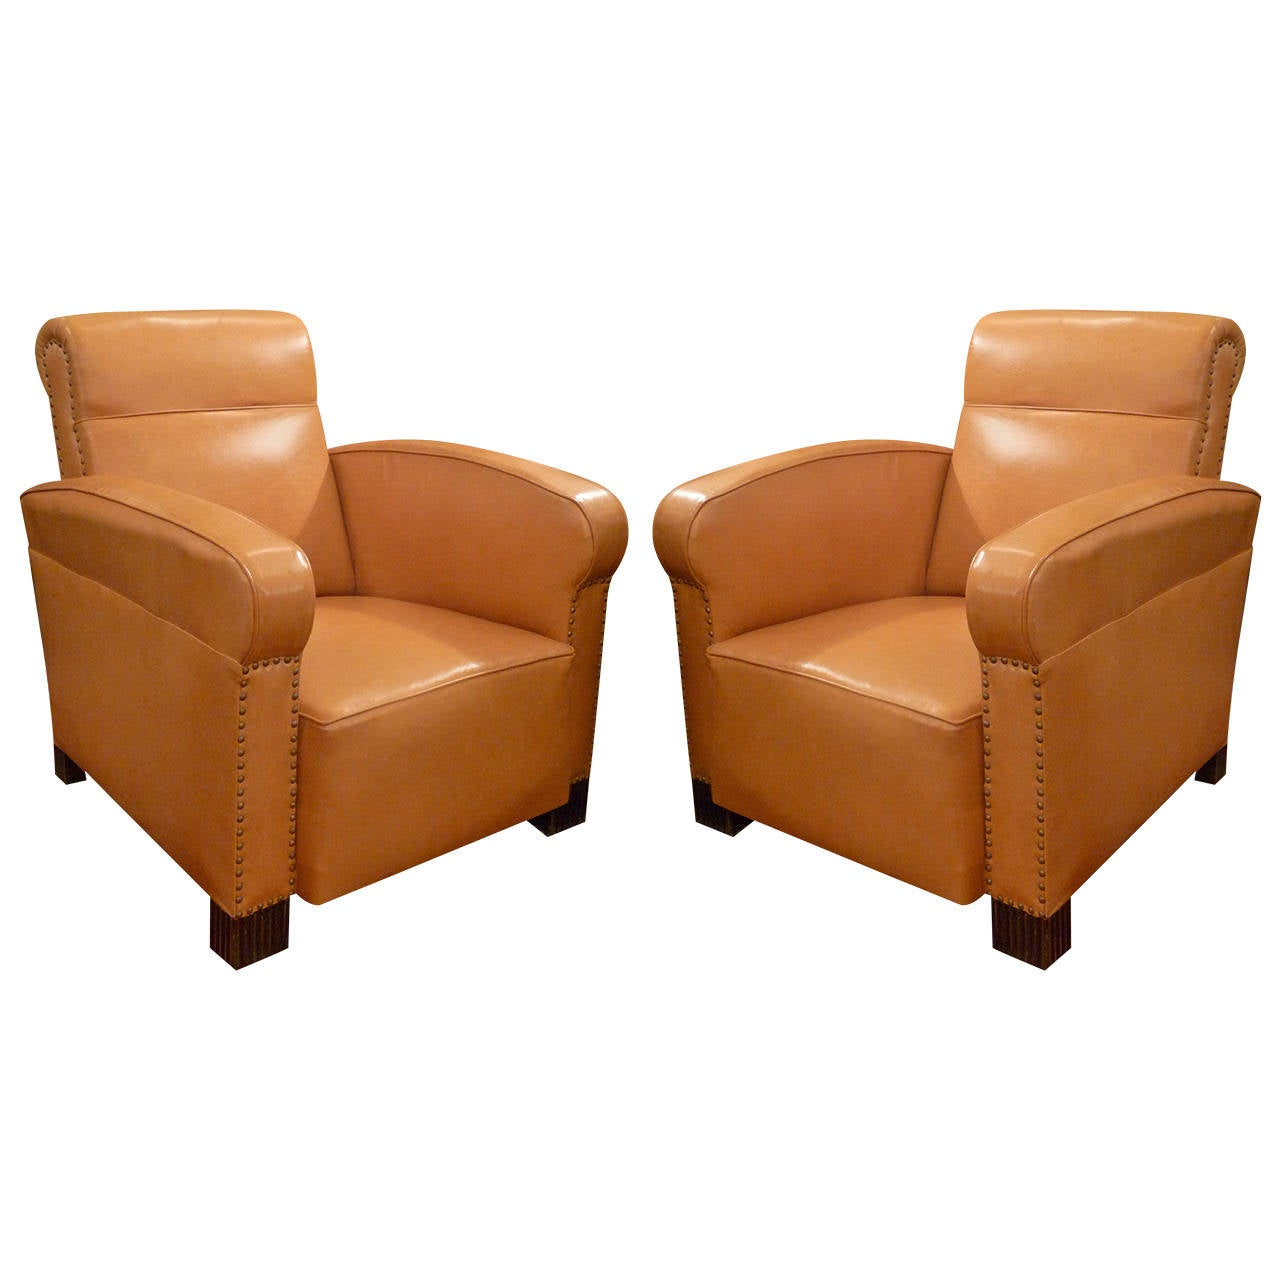 Pair of Art Deco Leather Club Chairs at 1stdibs